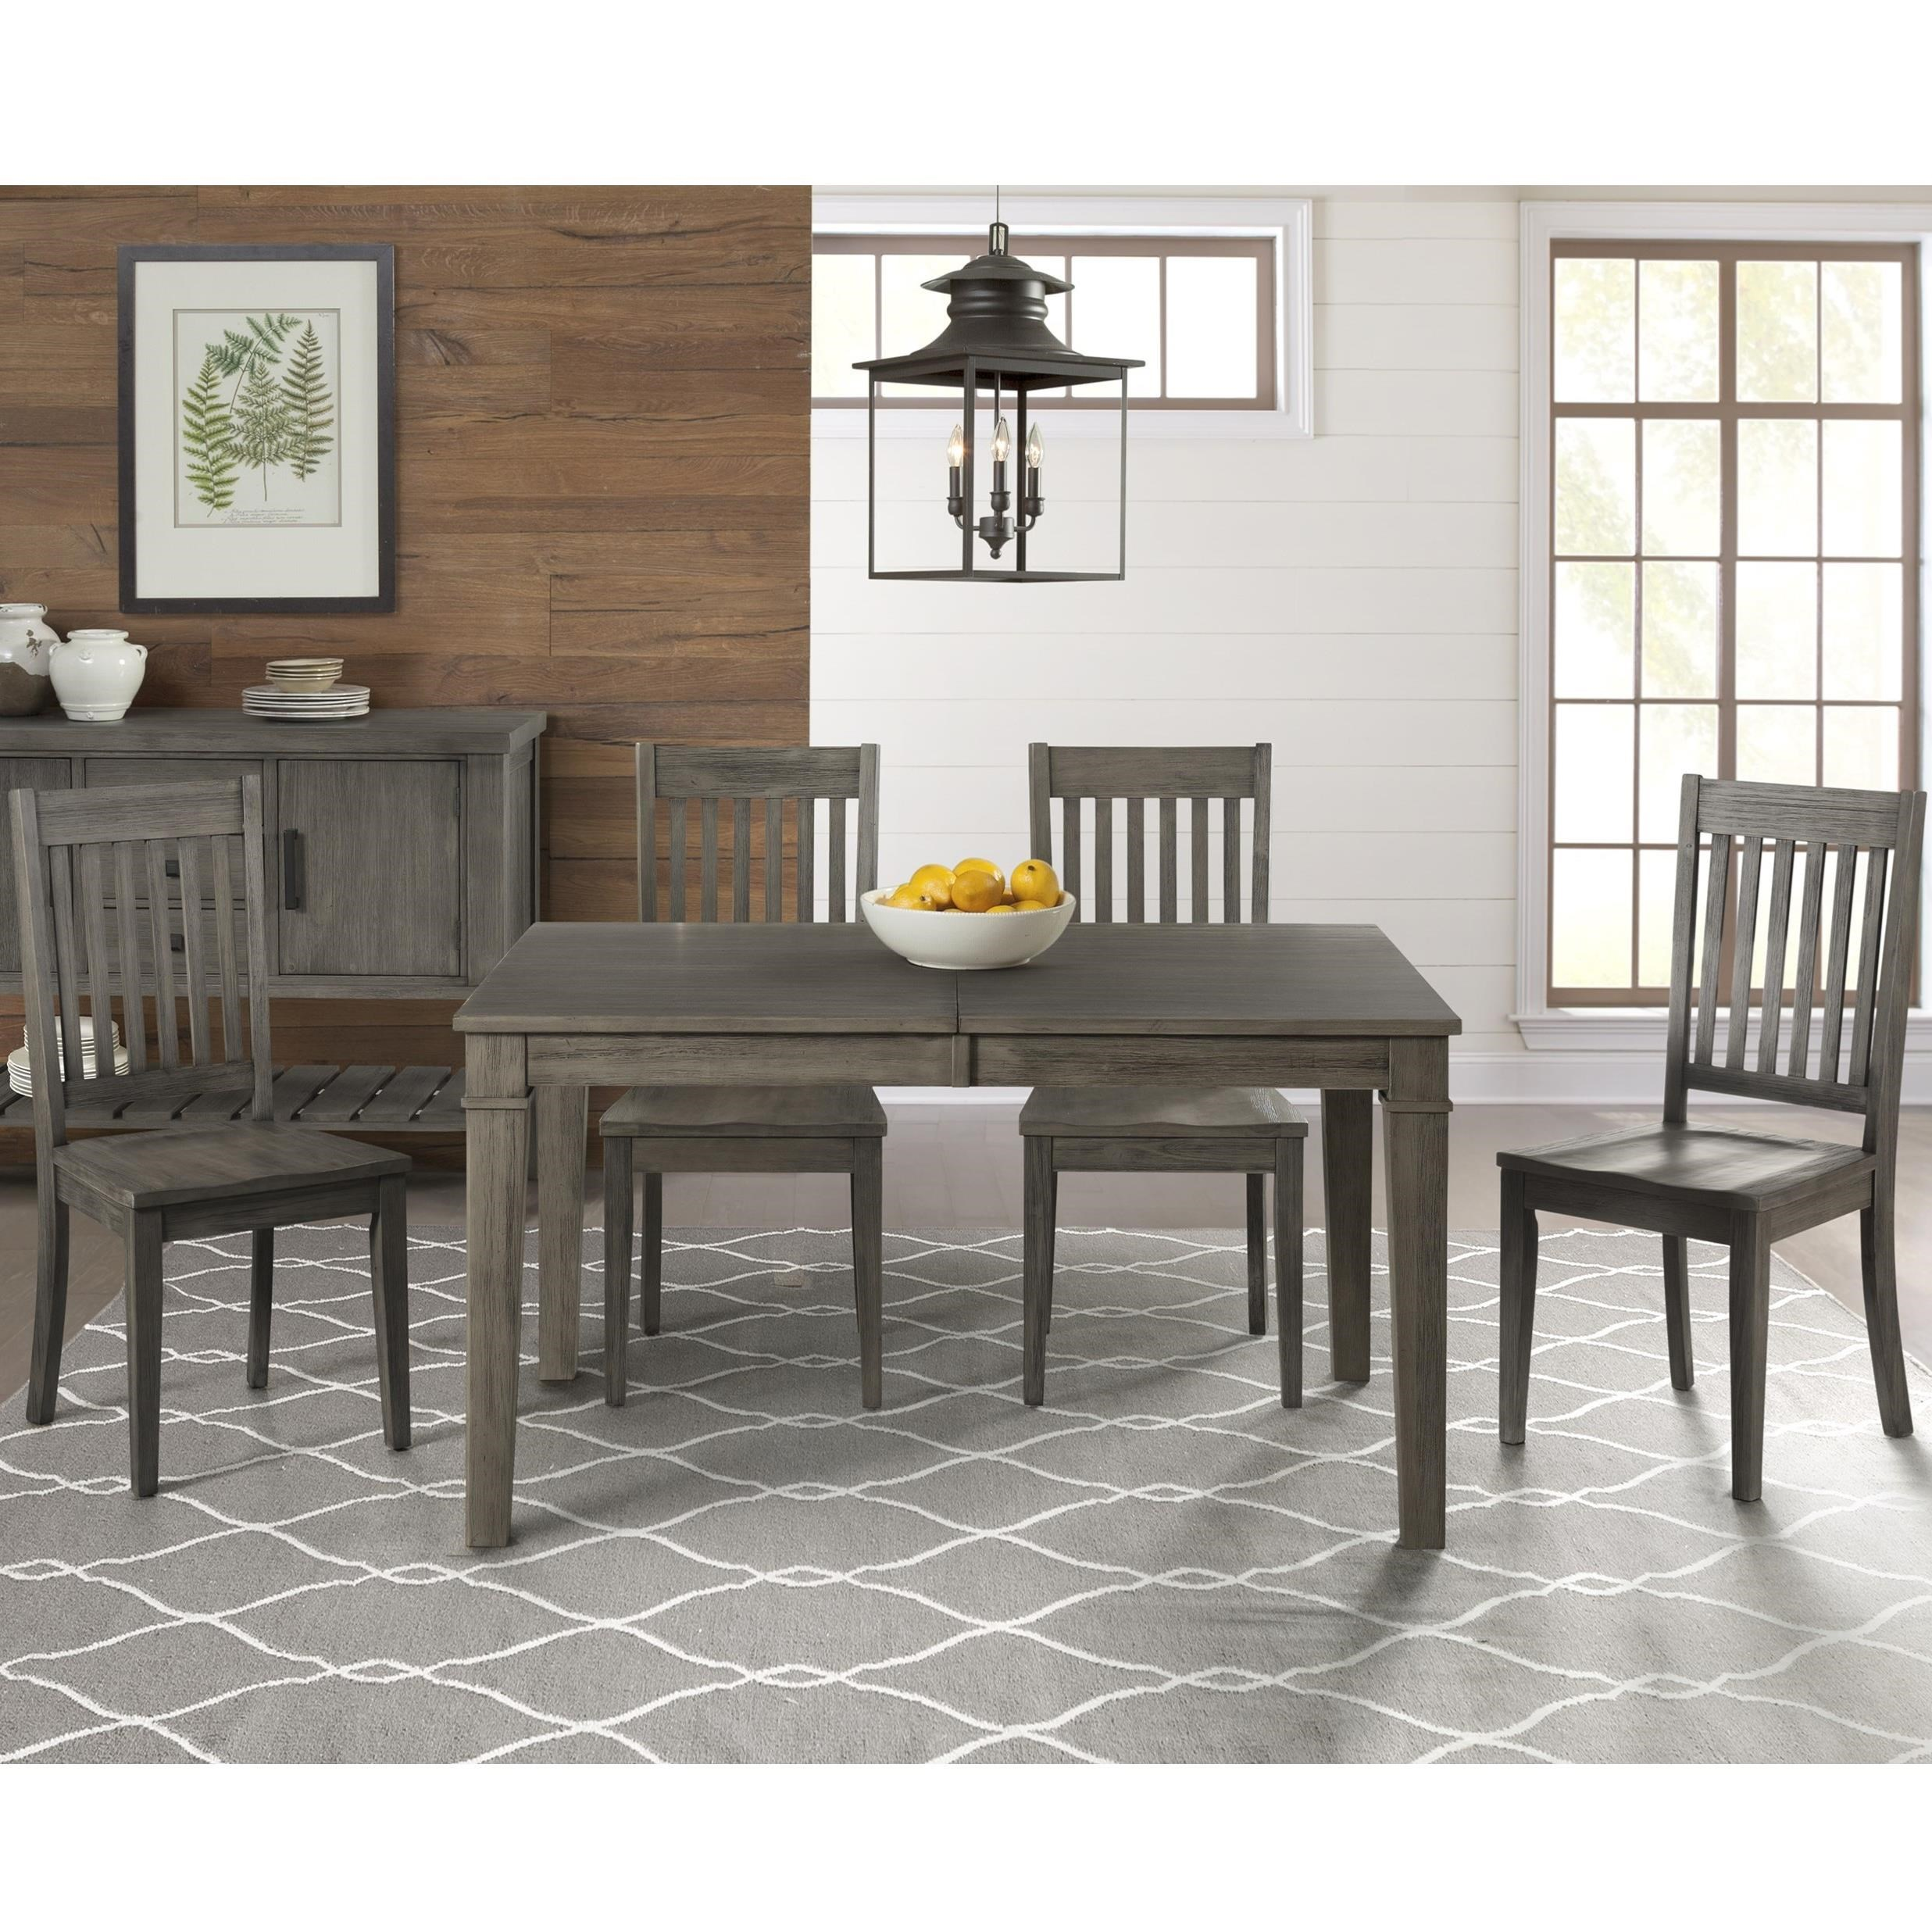 AAmerica Huron 5 Piece Transitional Table And Slat Back Chair Set